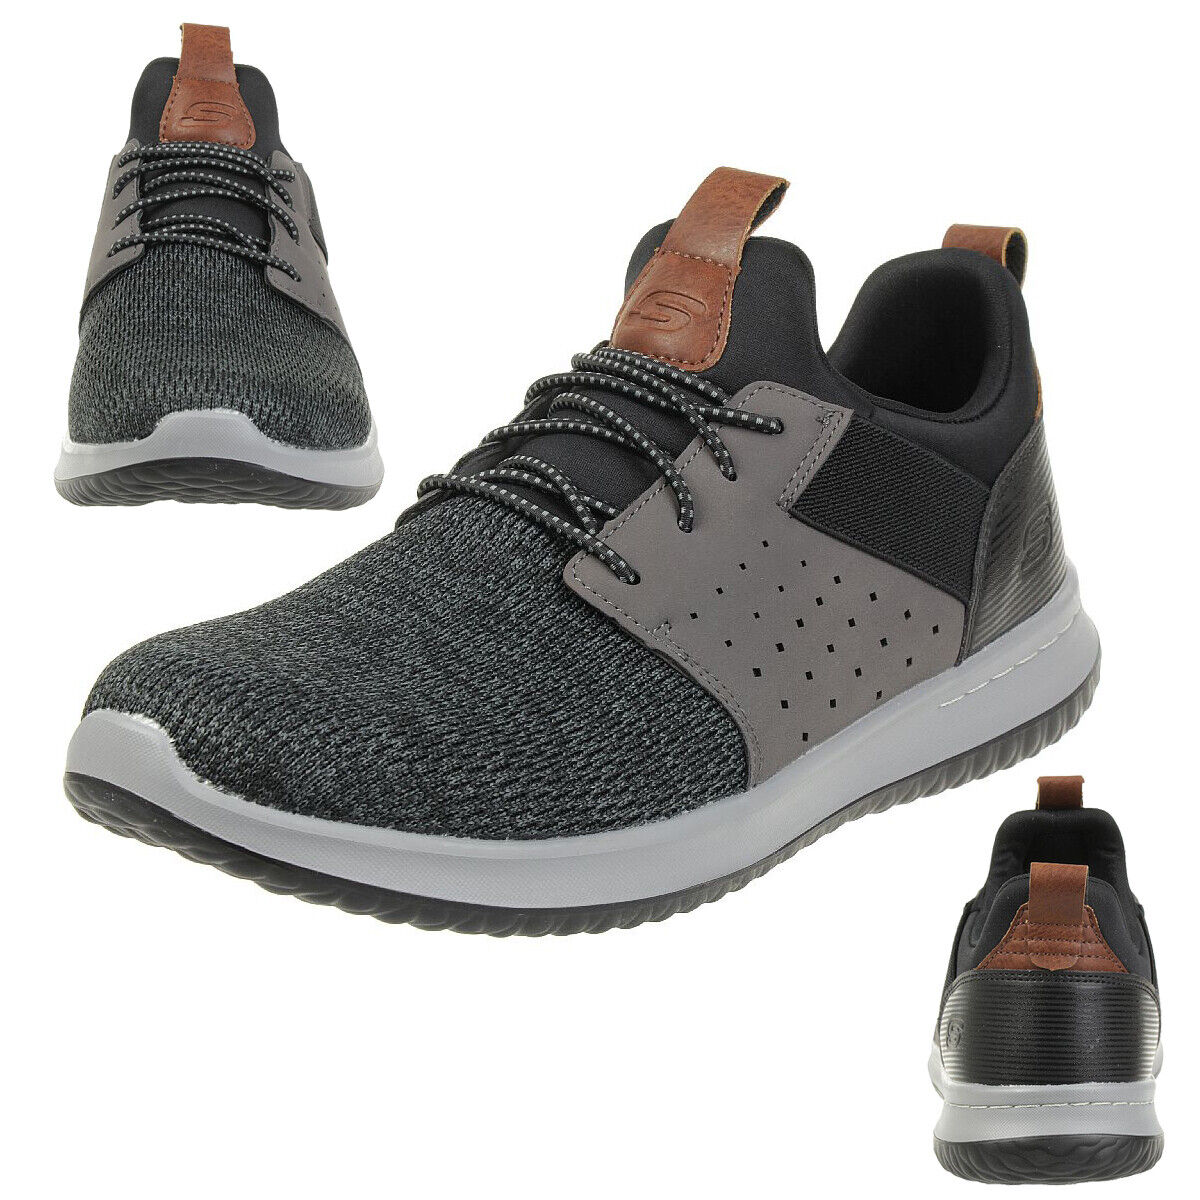 Skechers Classic Fit Delson camben Aircooled memory foam calcetines cortos bkgy